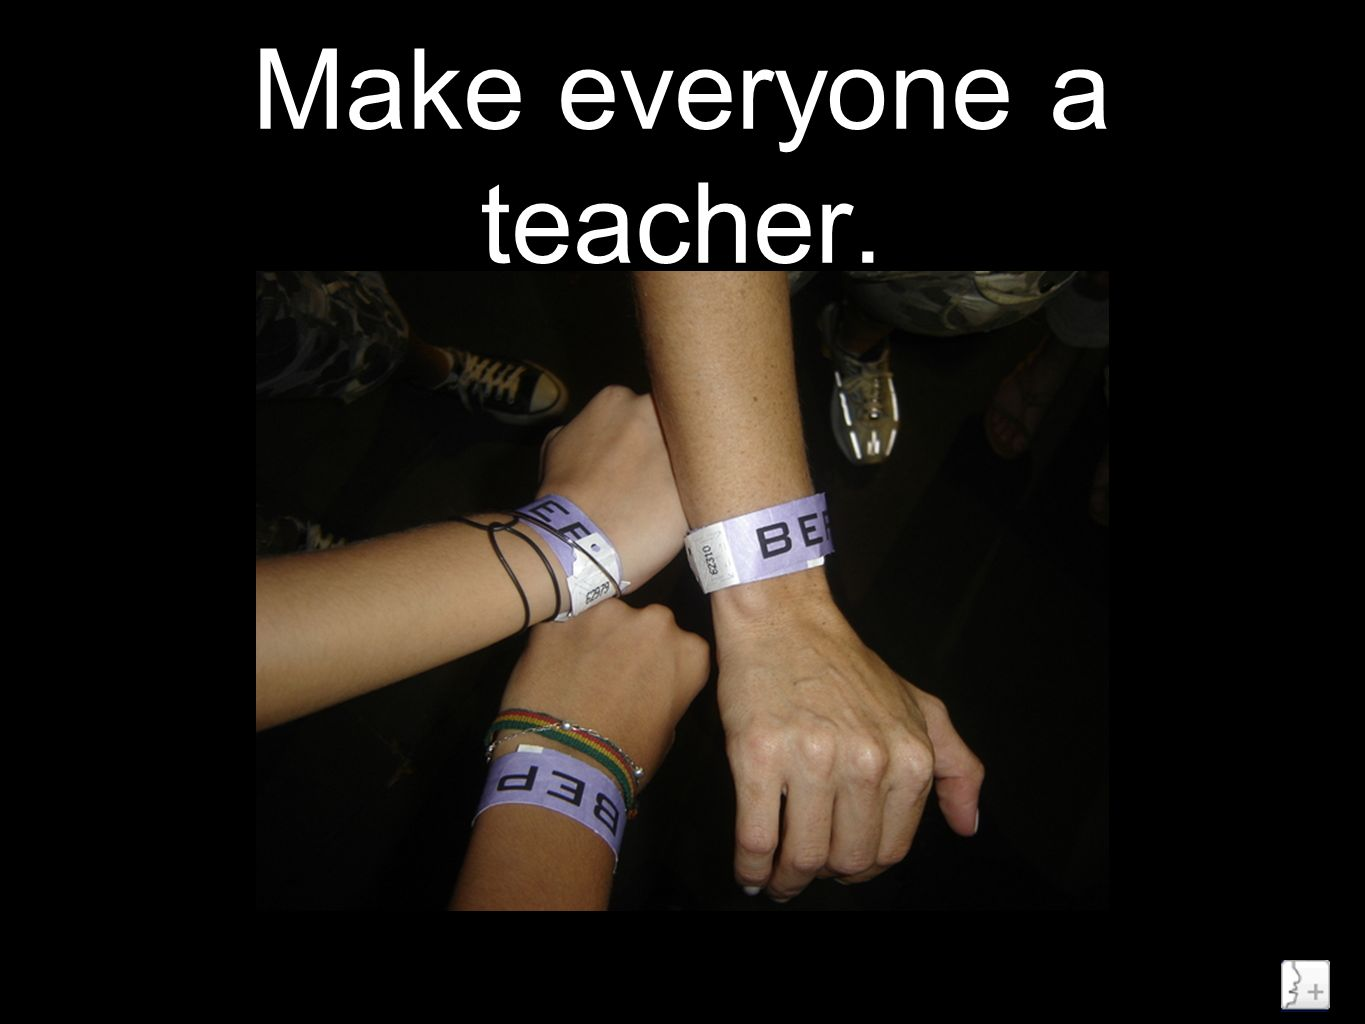 Make everyone a teacher.